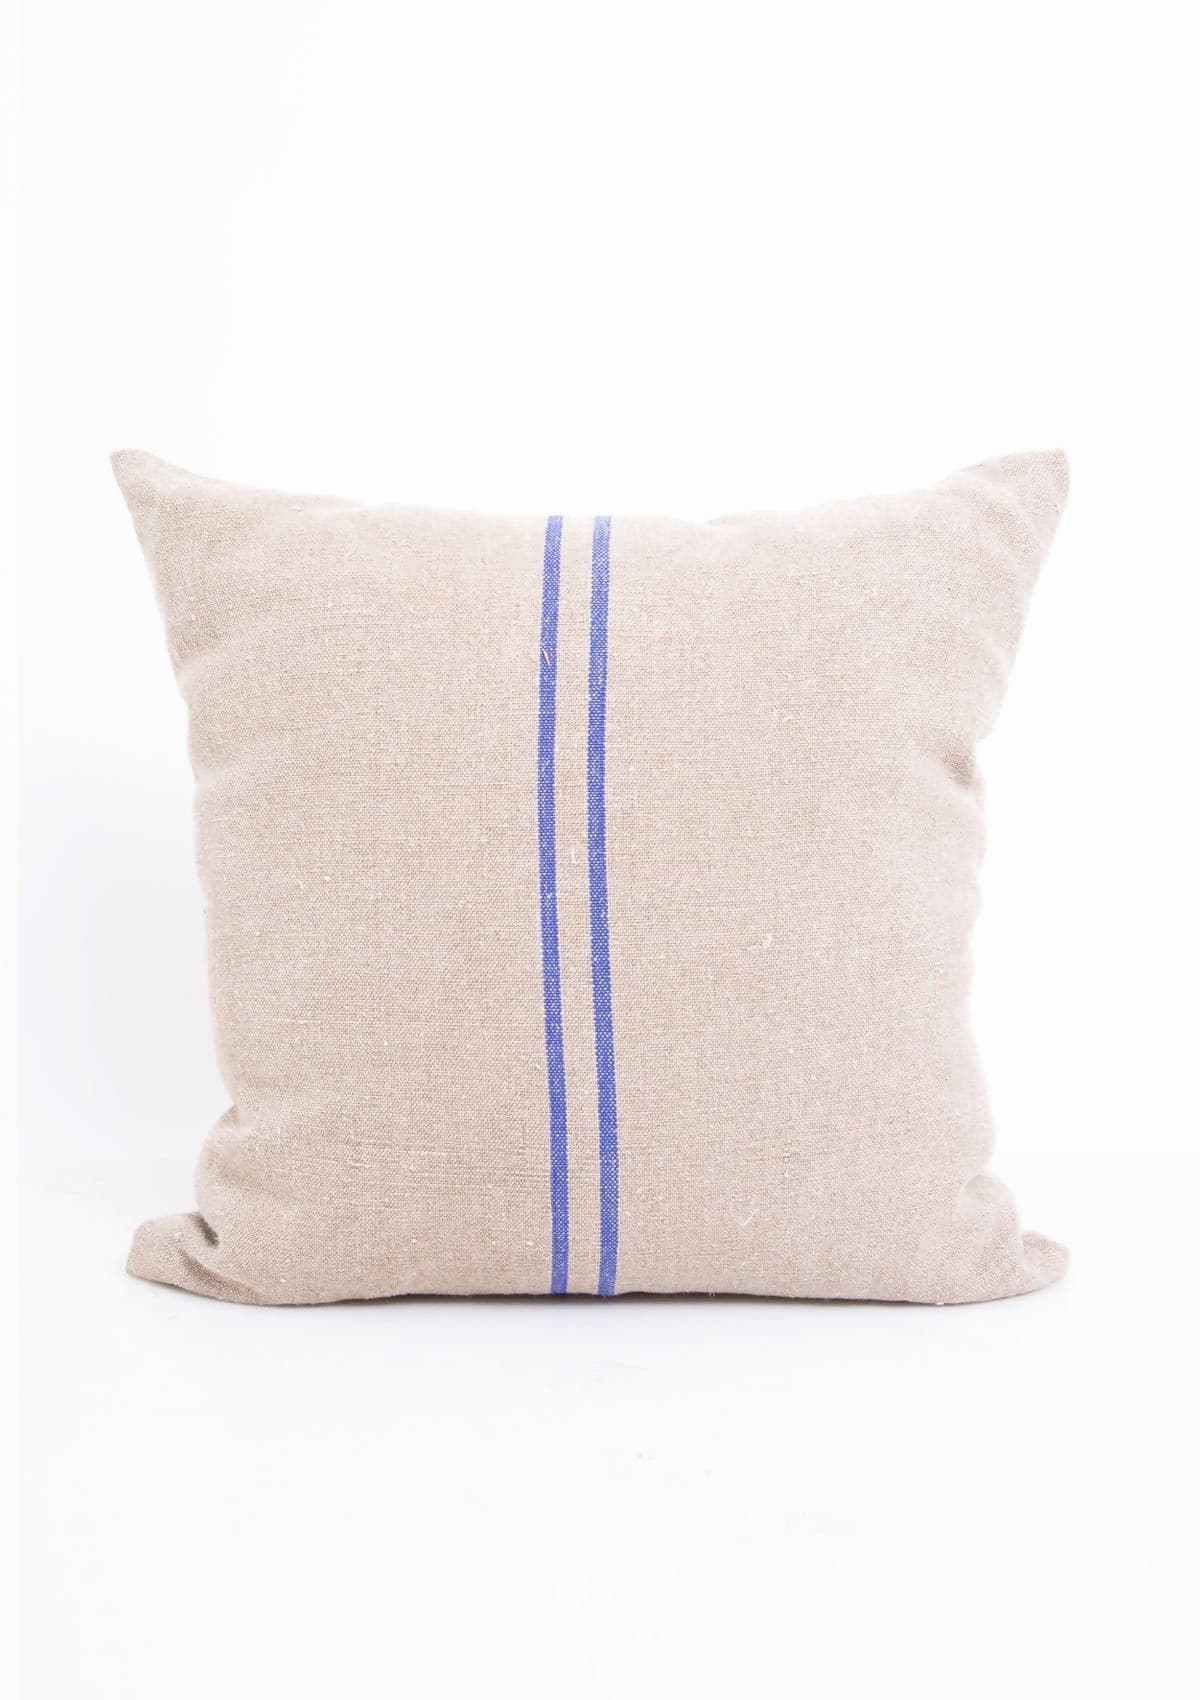 Vintage Linen Pillow, Blue Stripe